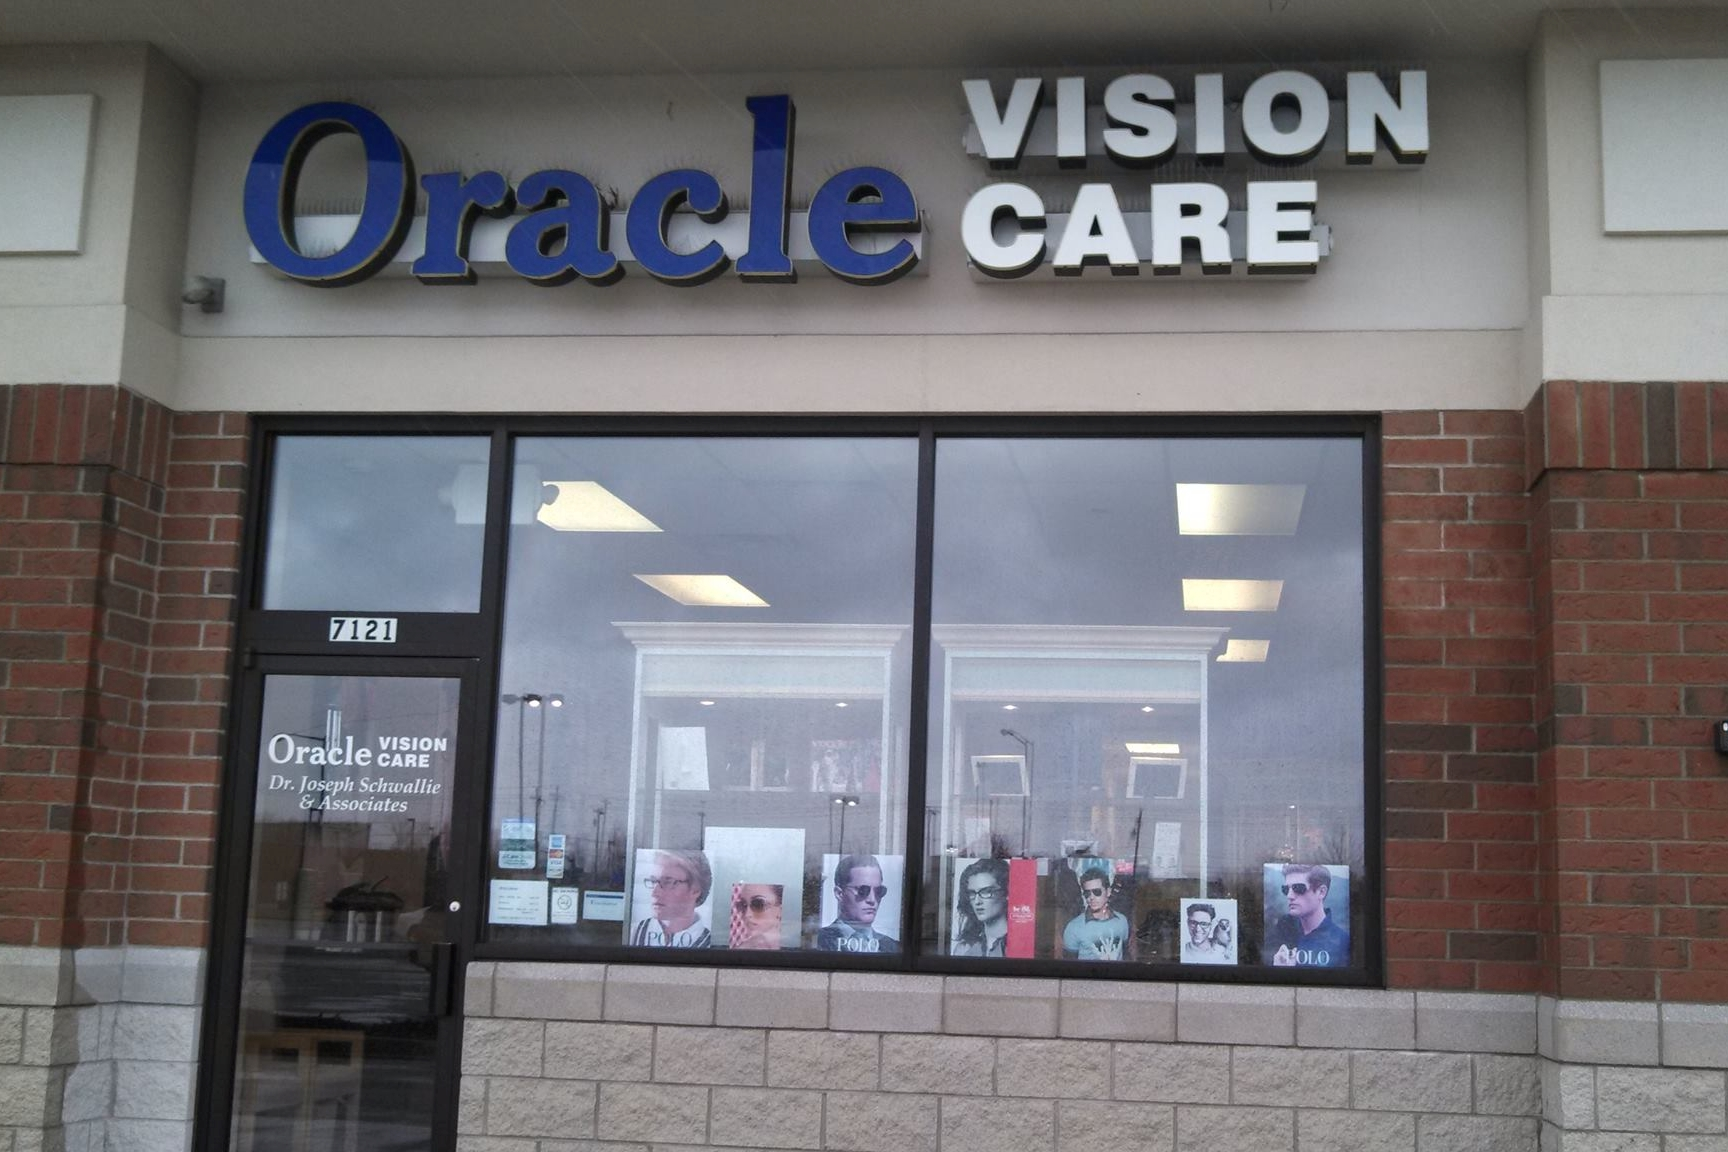 Oracle Vision Care exterior